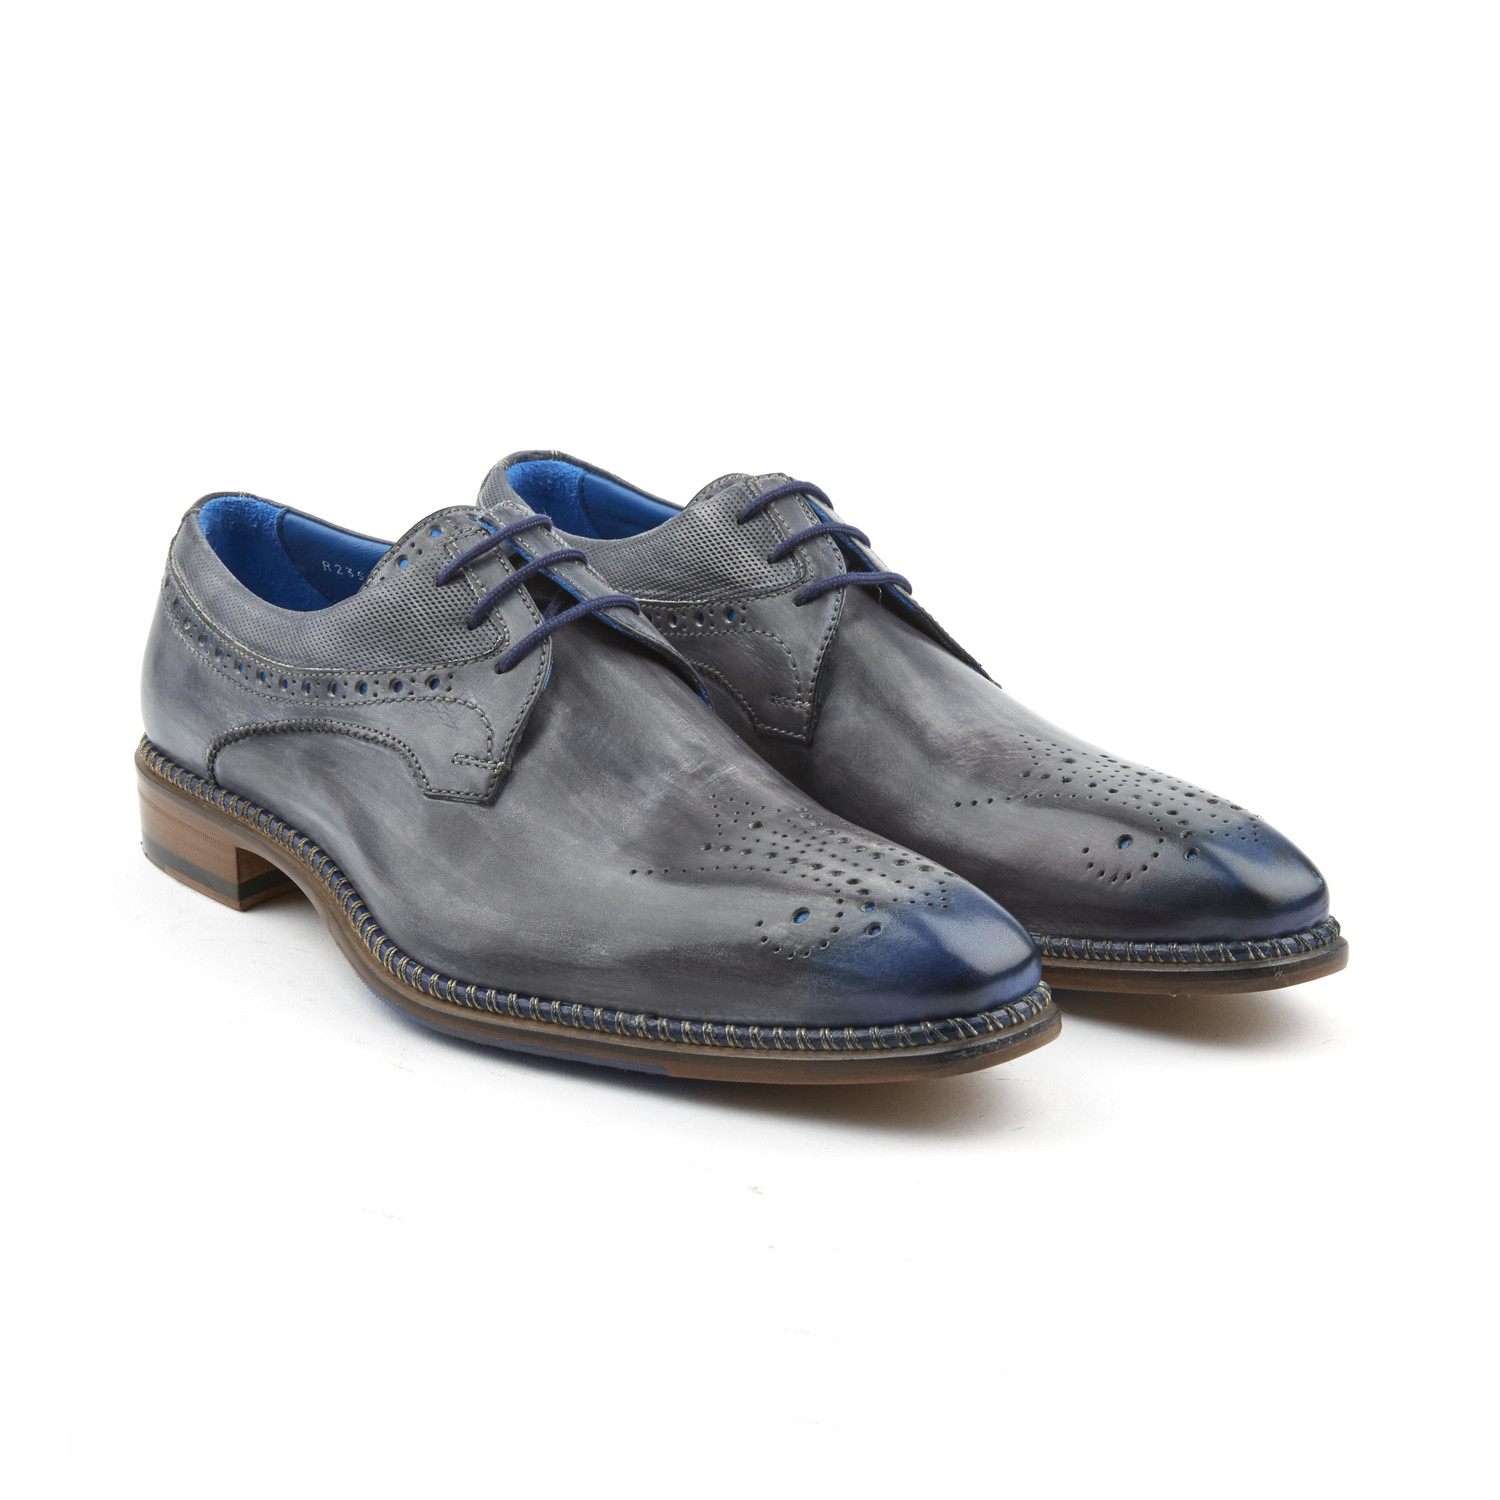 Jose Real Shoes Sale